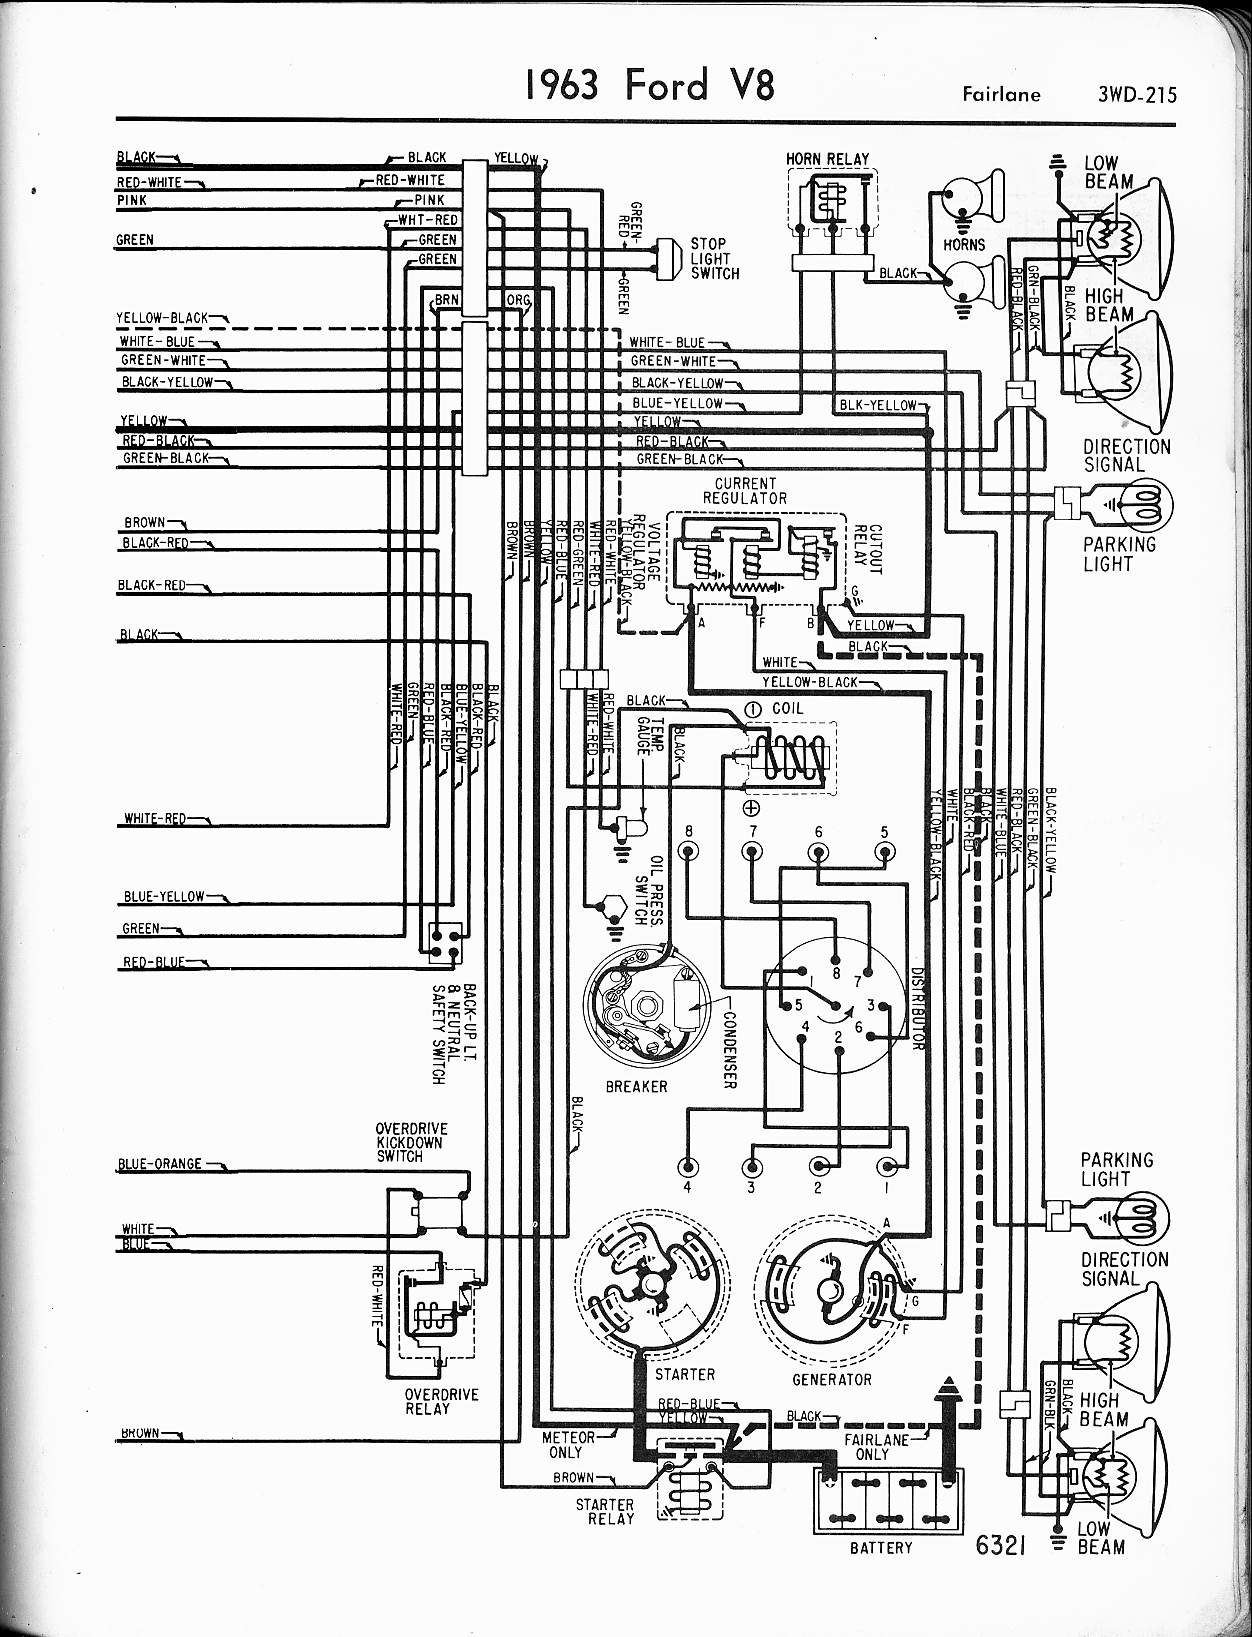 MWire5765 215 57 65 ford wiring diagrams 63 falcon wiring diagram at bayanpartner.co